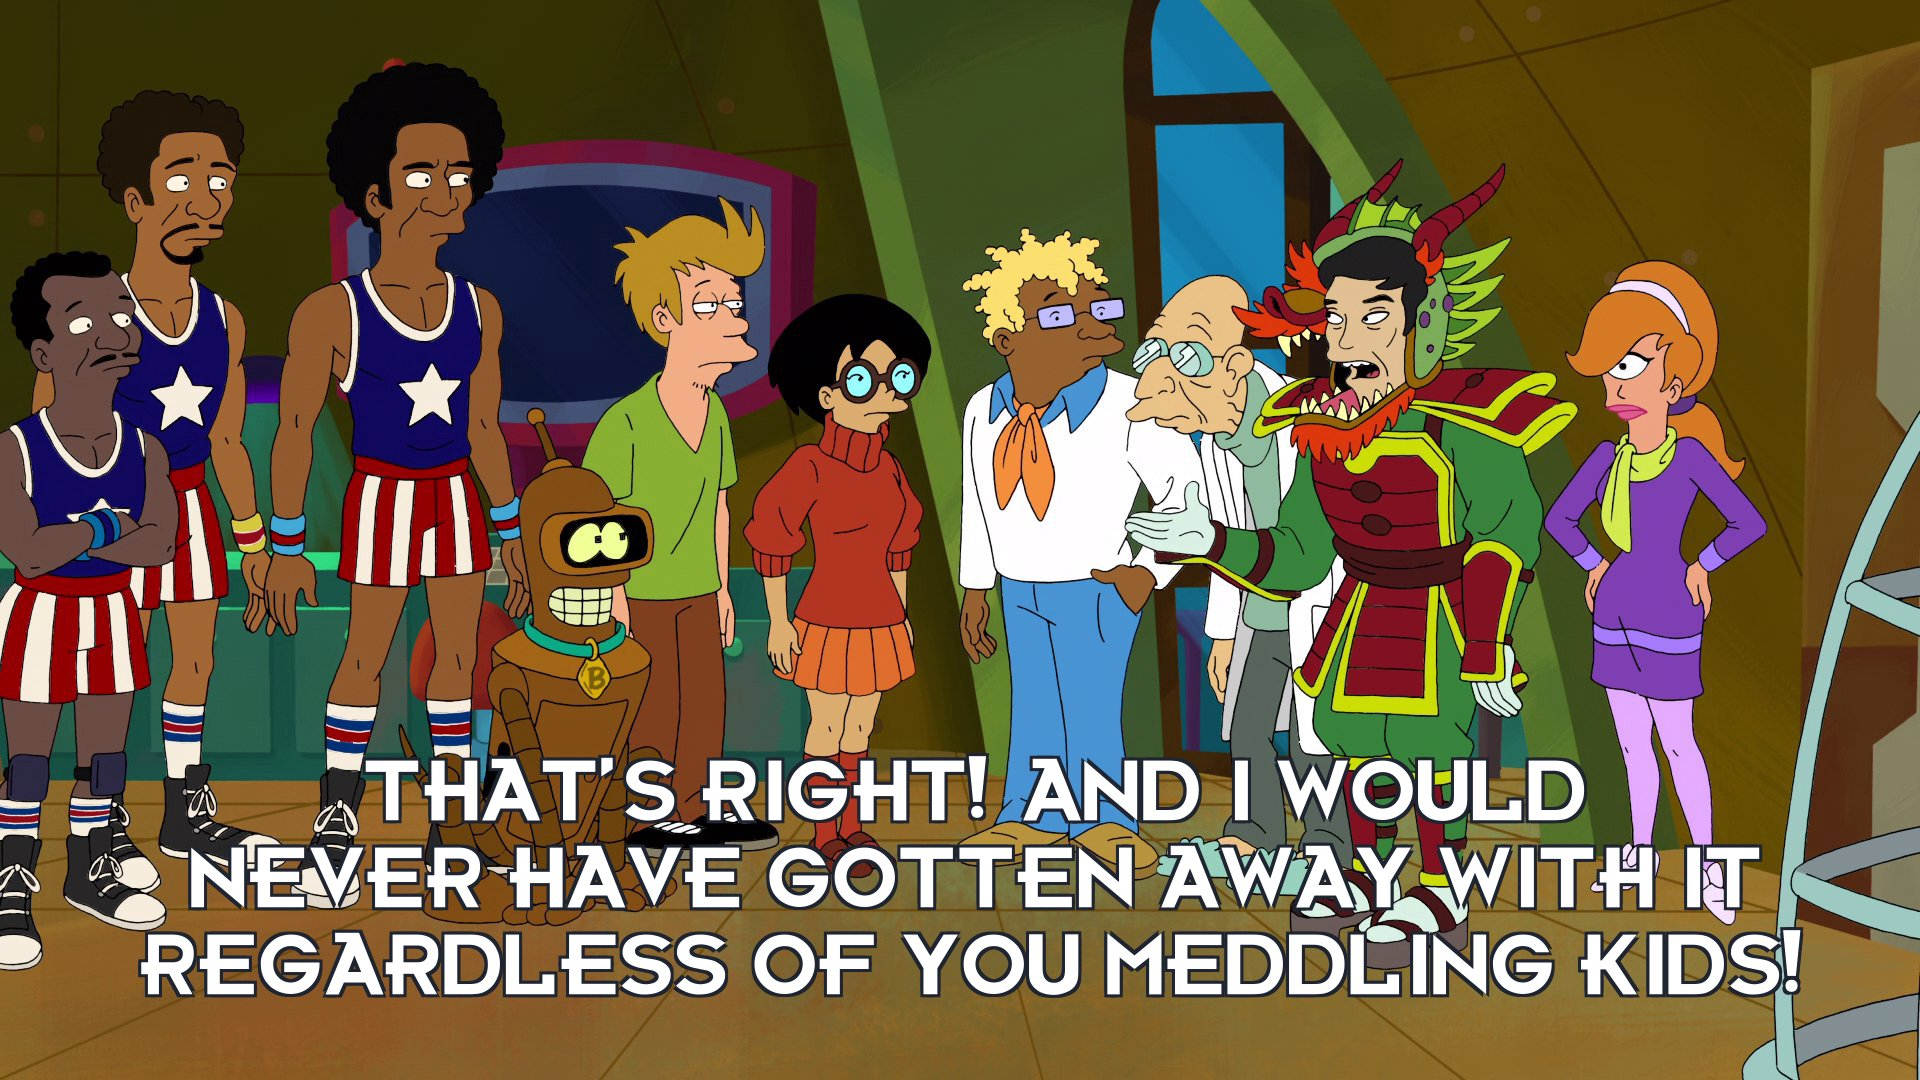 George Takei: That's right! And I would never have gotten away with it regardless of you meddling kids!